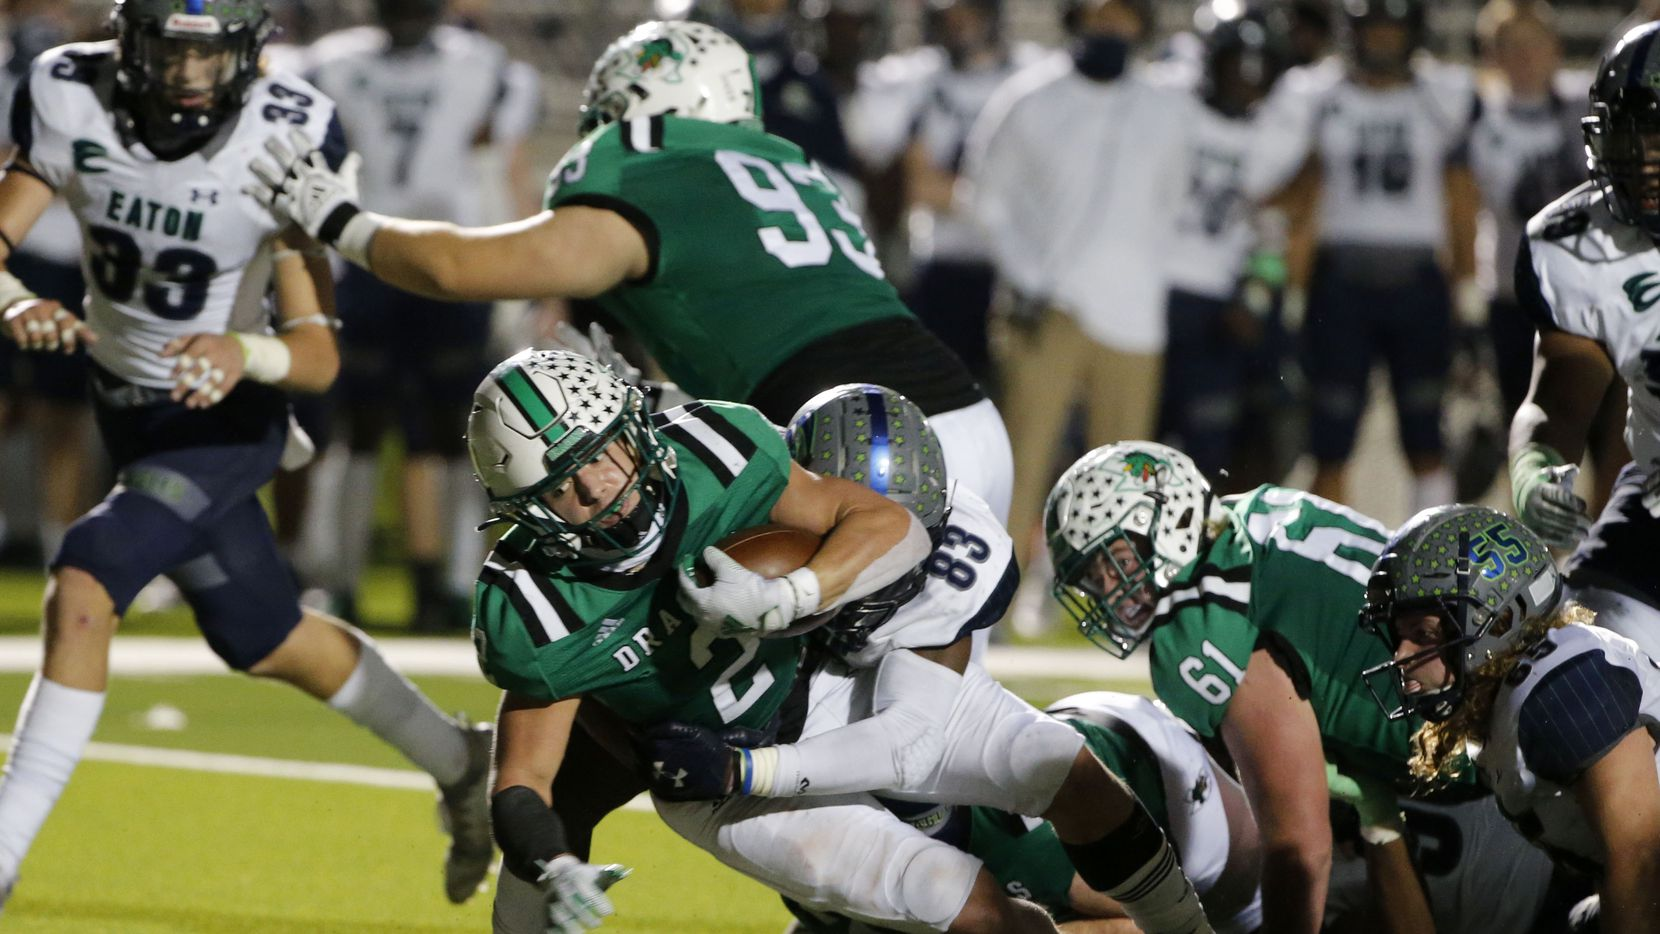 Southlake's Owen Allen (2) scores a rushing touchdown against Eaton during their high school football game on Nov. 20, 2020.